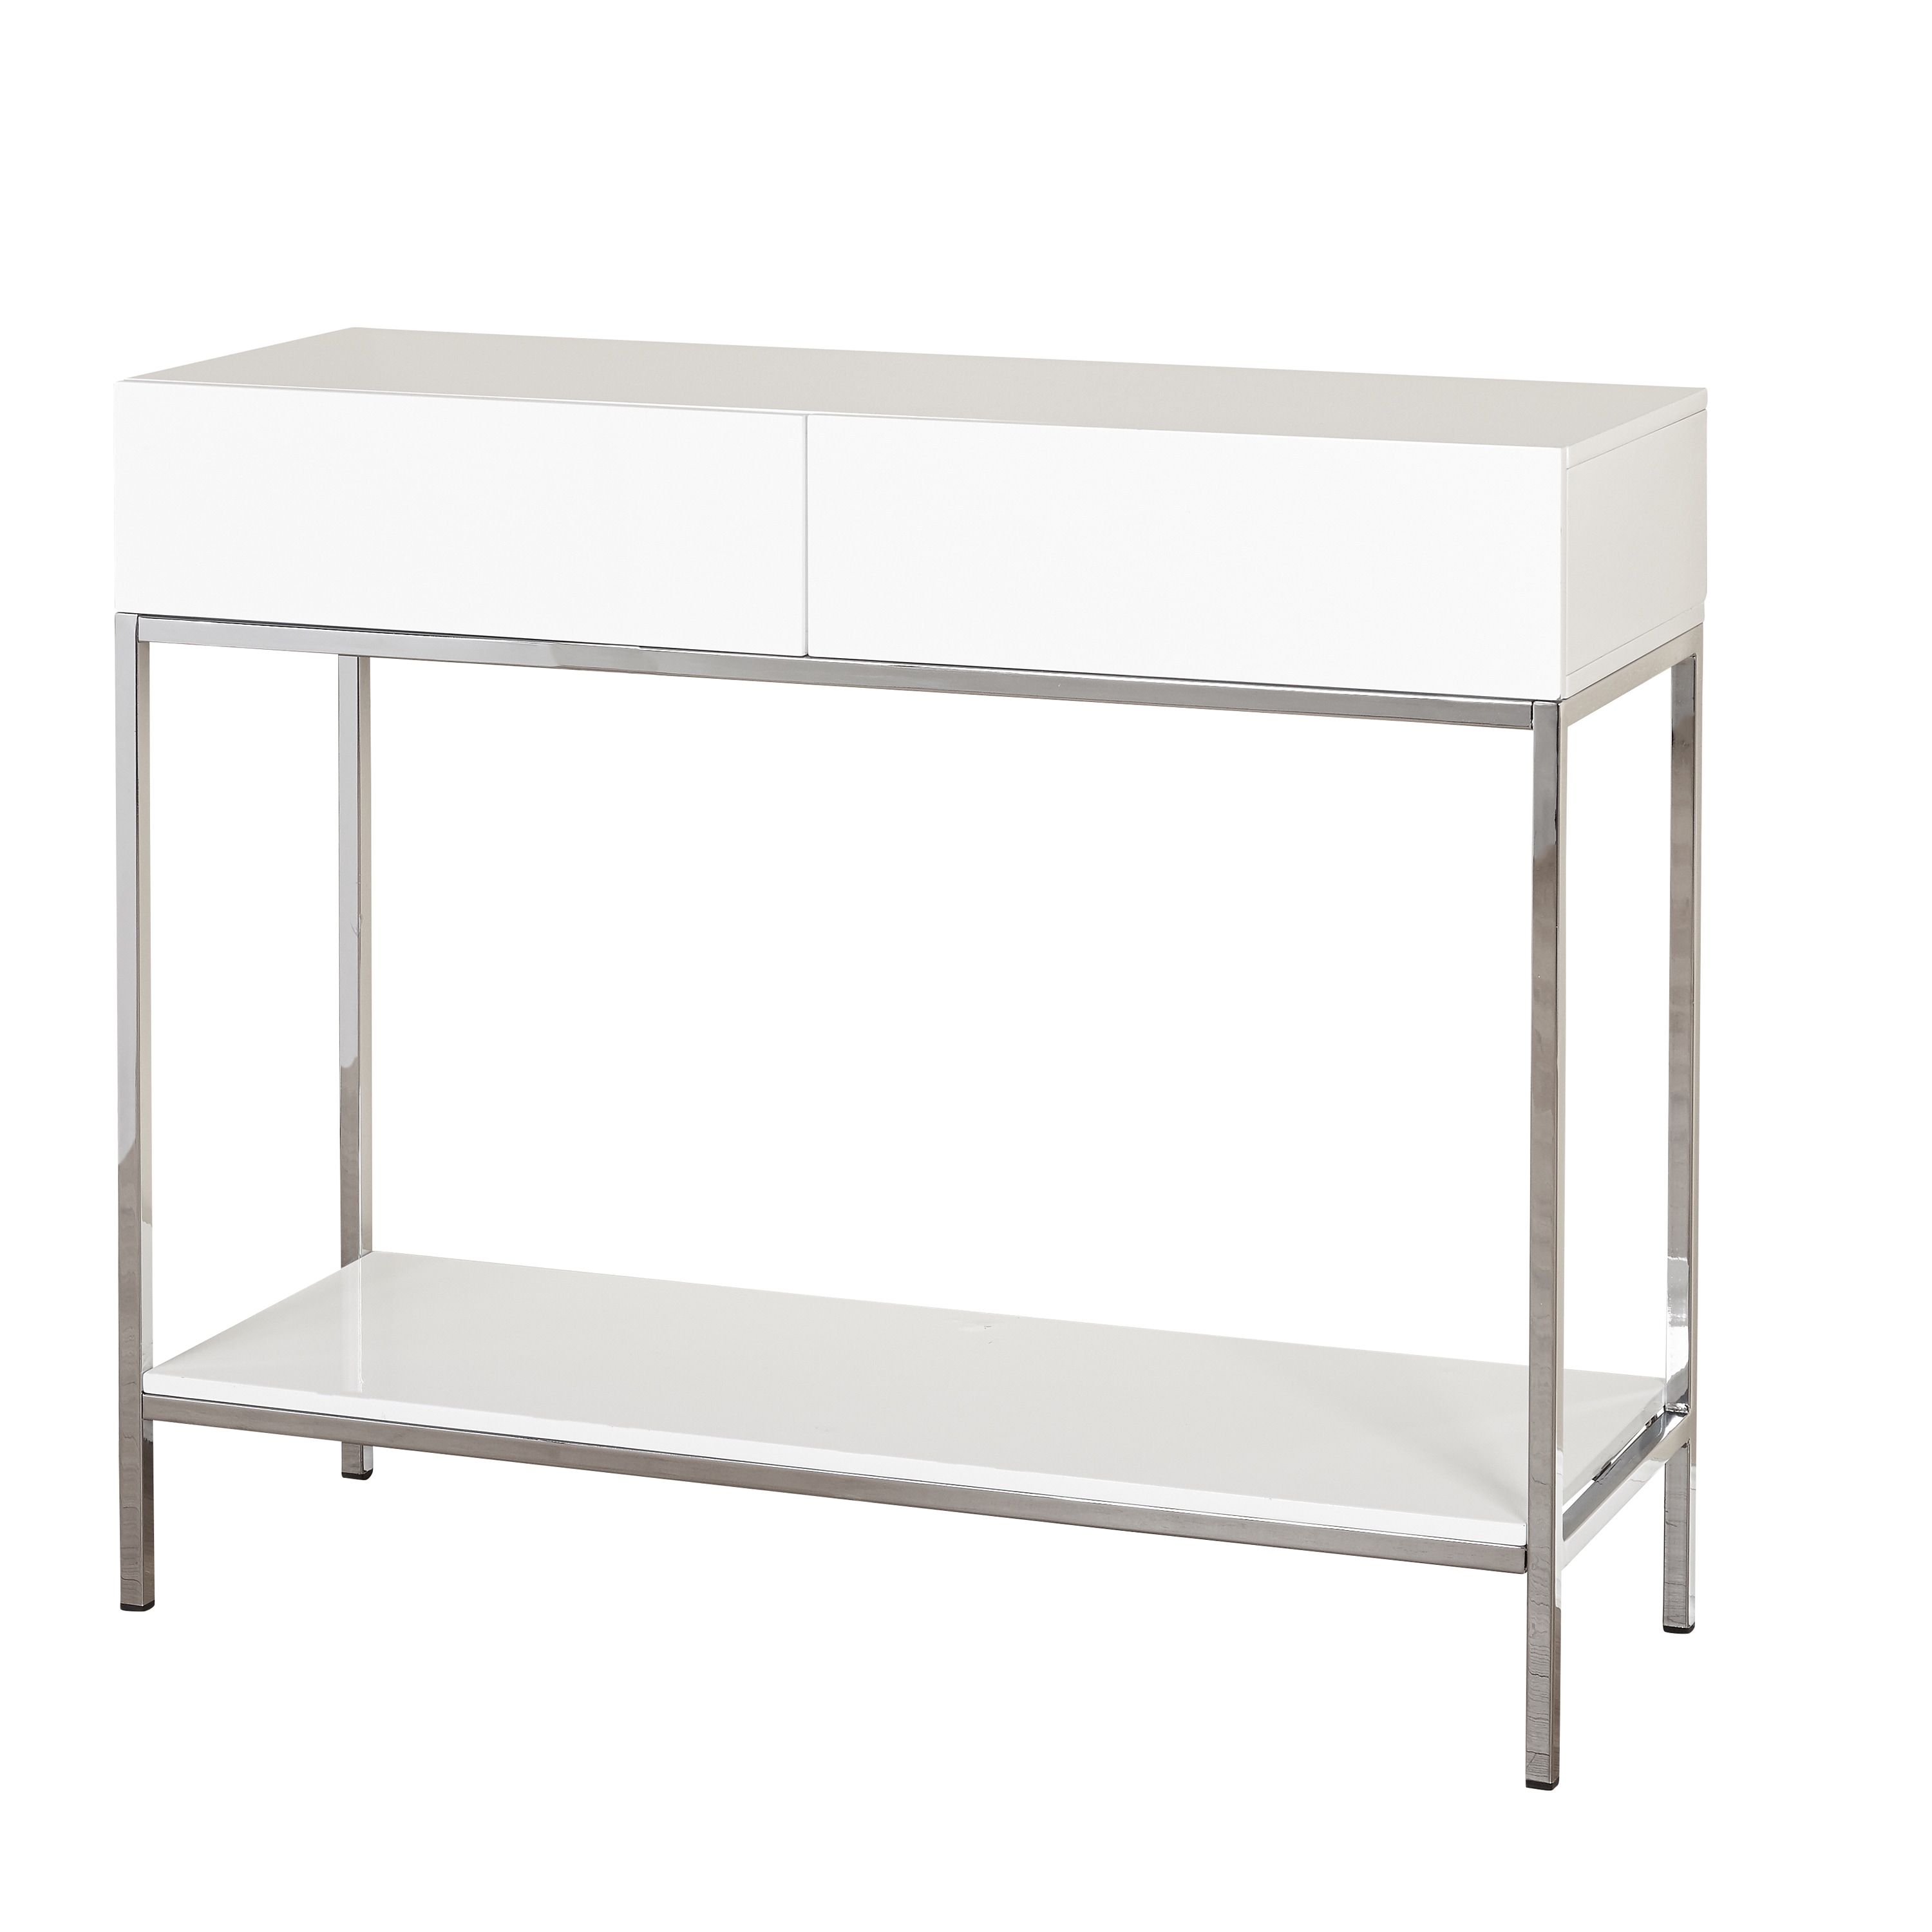 e6b6afb8a98 Shop Simple Living White Wood and Chrome Metal High Gloss Console Table -  On Sale - Ships To Canada - Overstock - 12958561